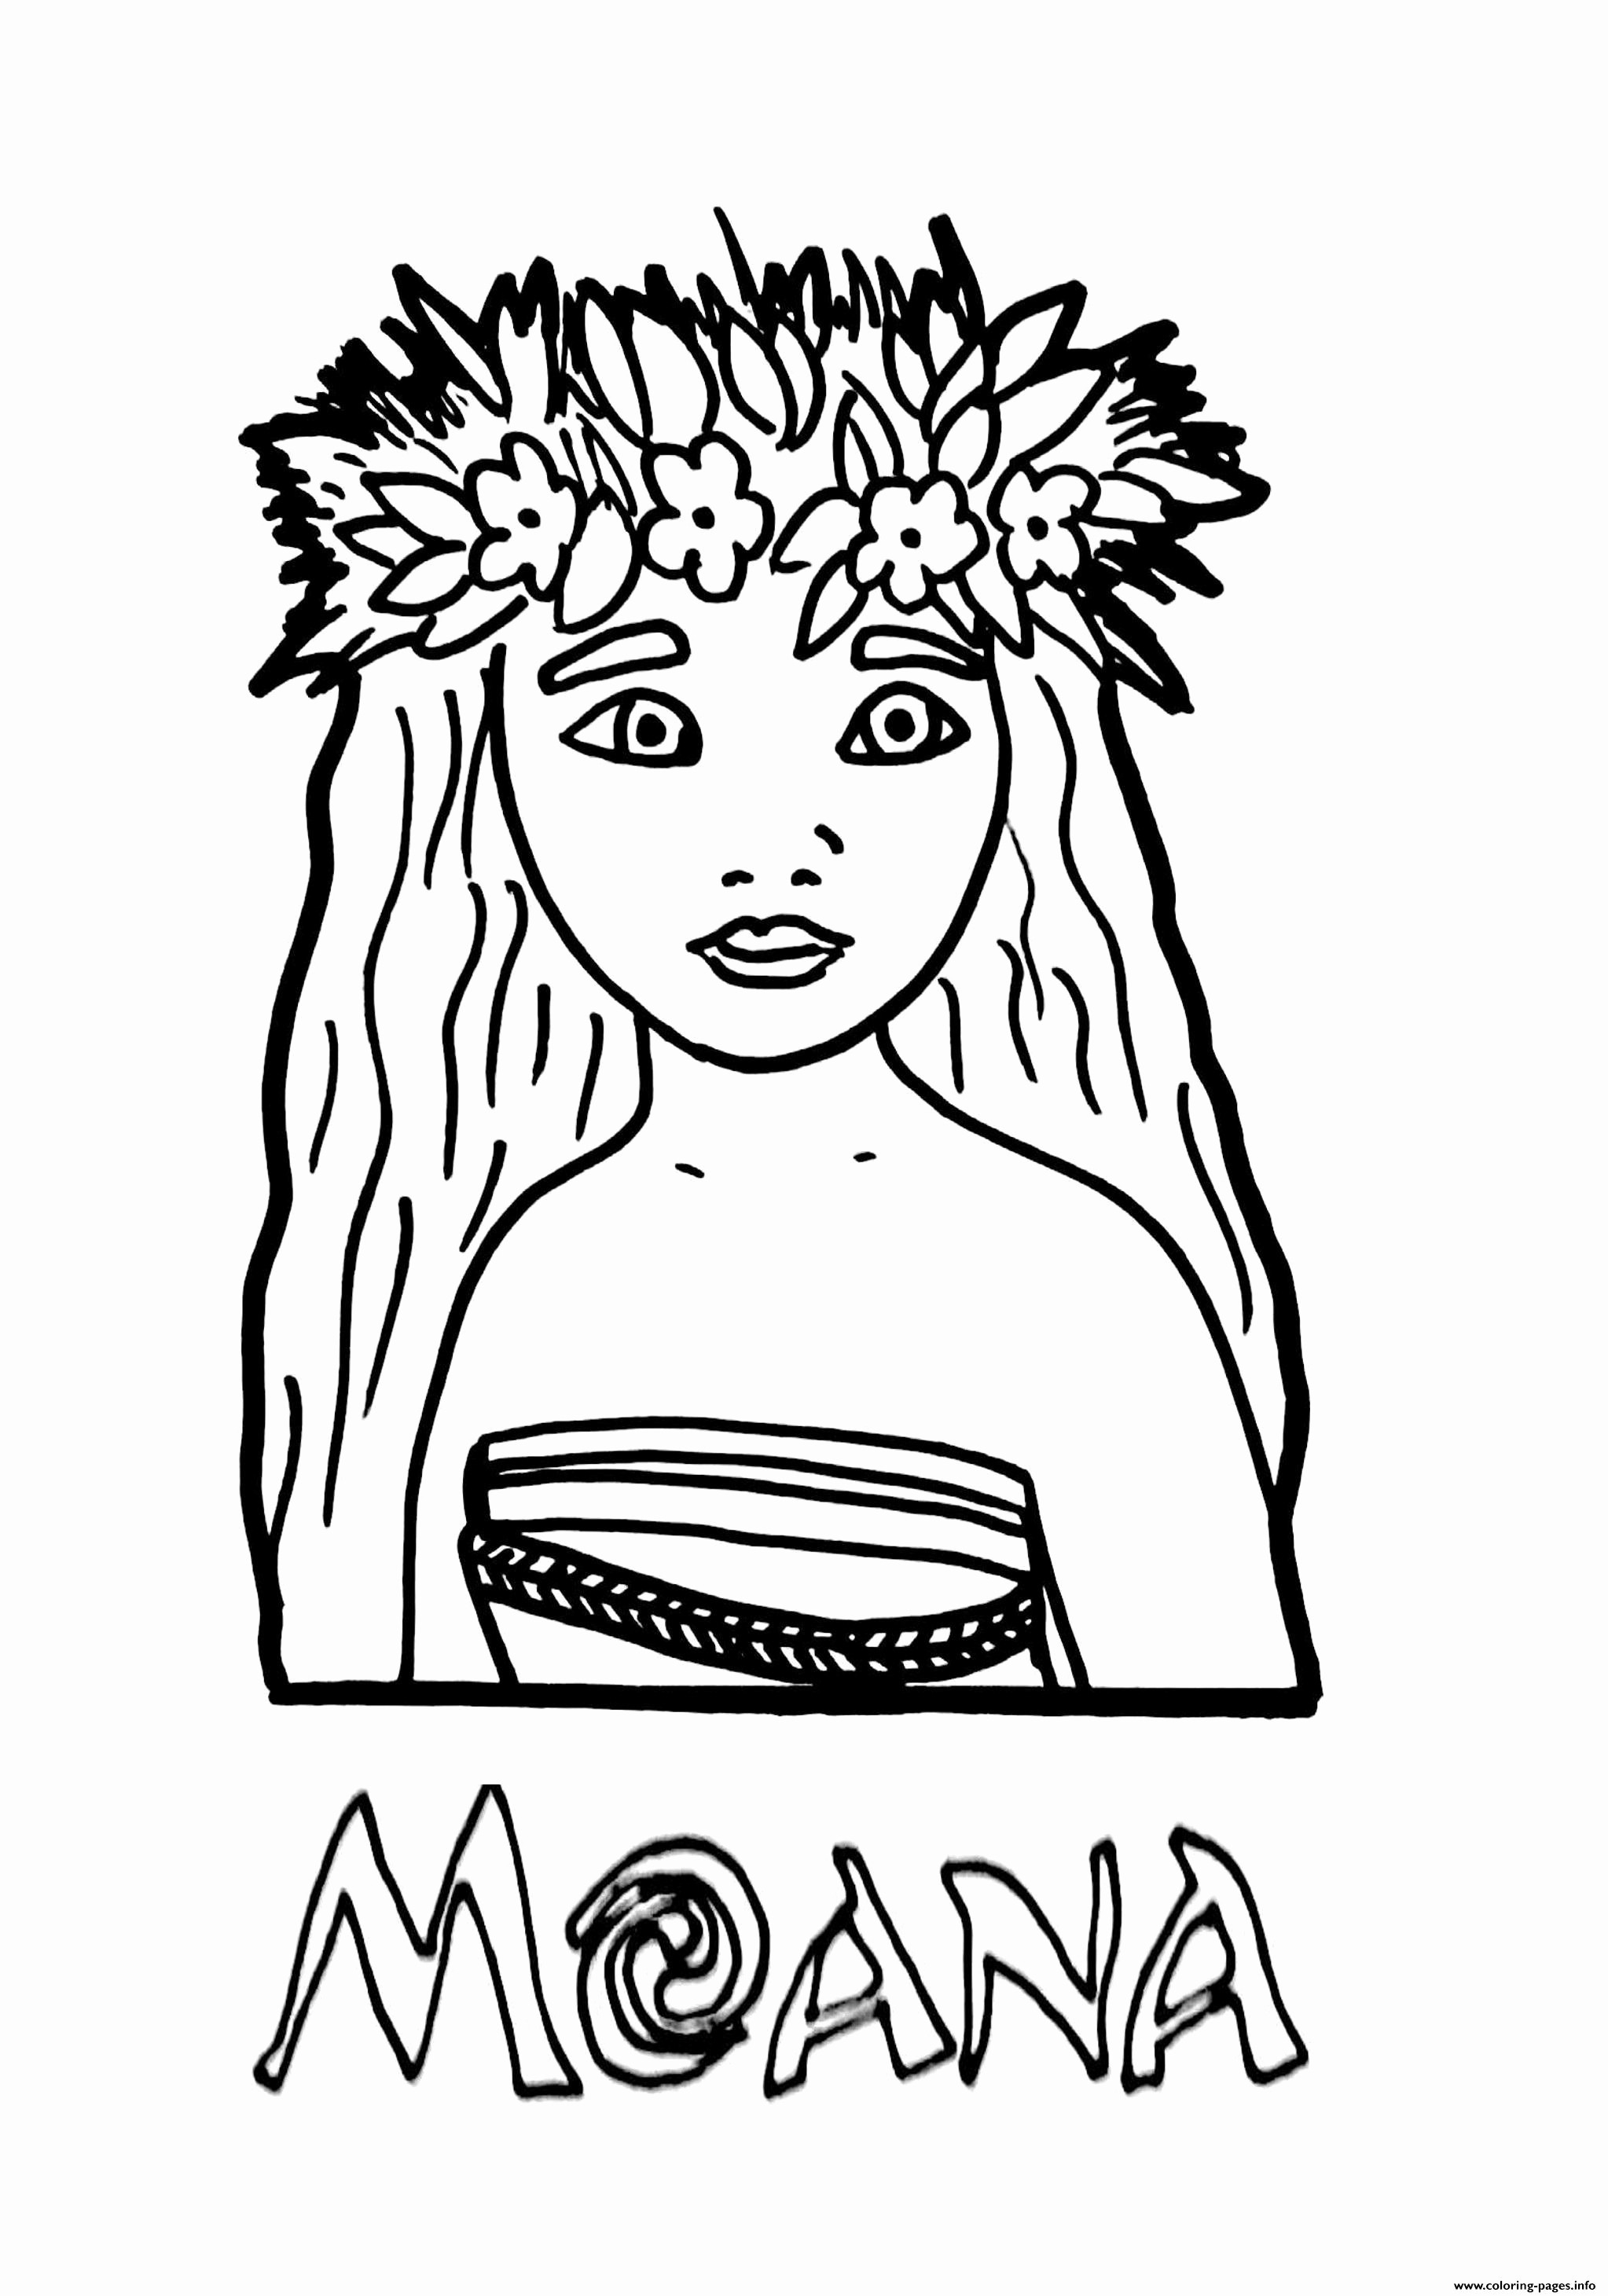 Printable Mosaic Coloring Pages  Download 4o - To print for your project